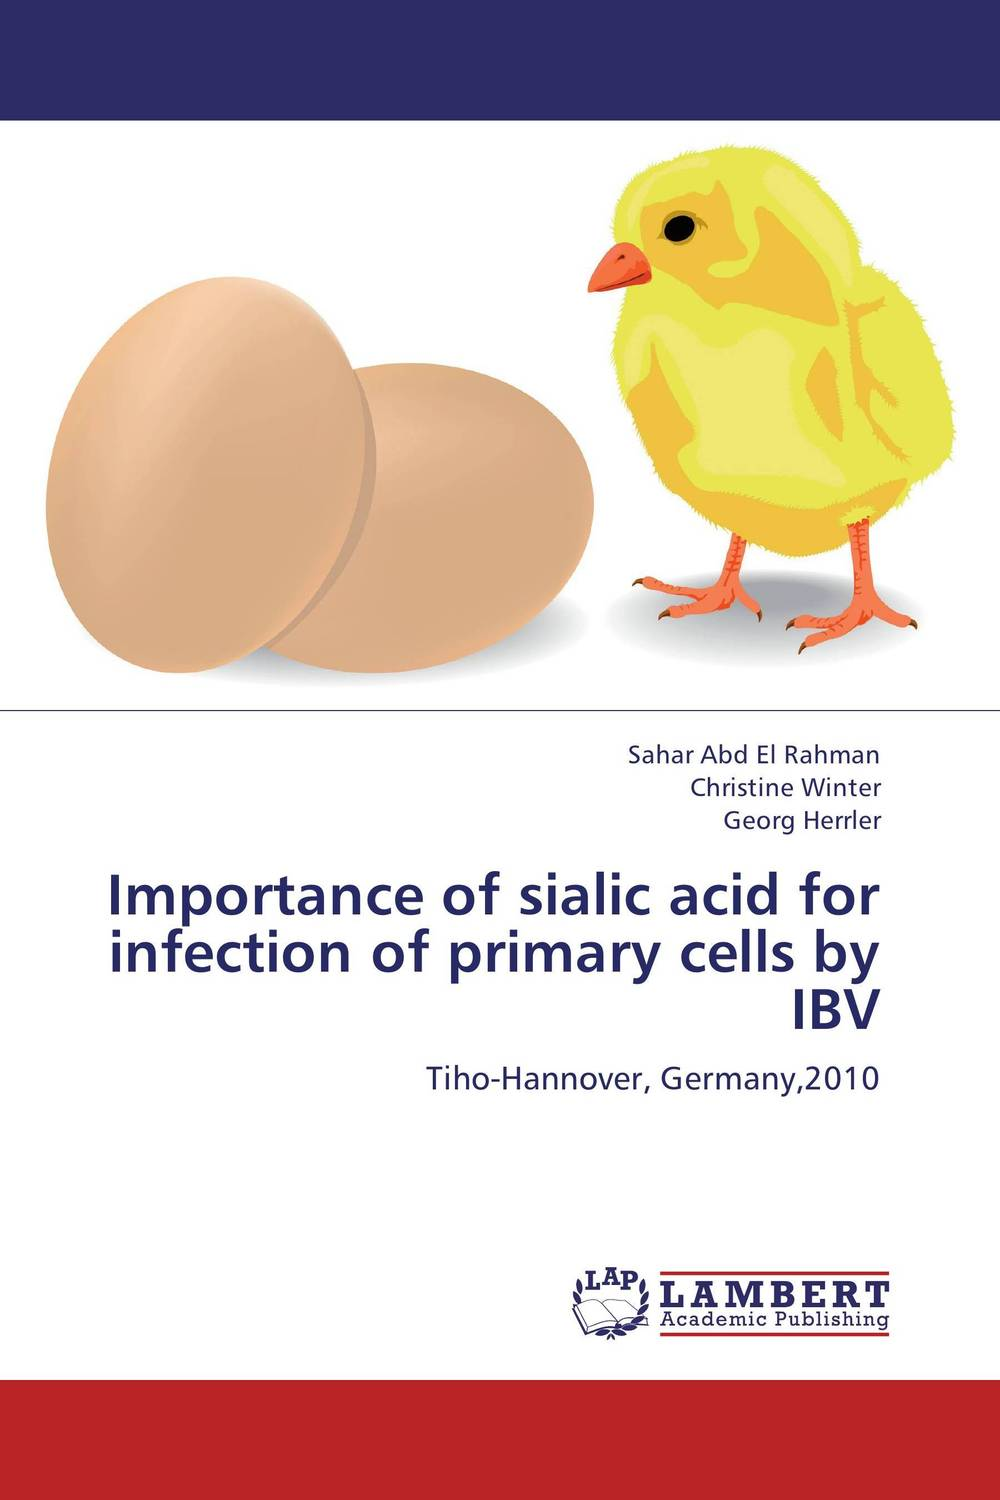 Importance of sialic acid for infection of primary cells by IBV modulation of hiv co receptor expression on cells by anti virals